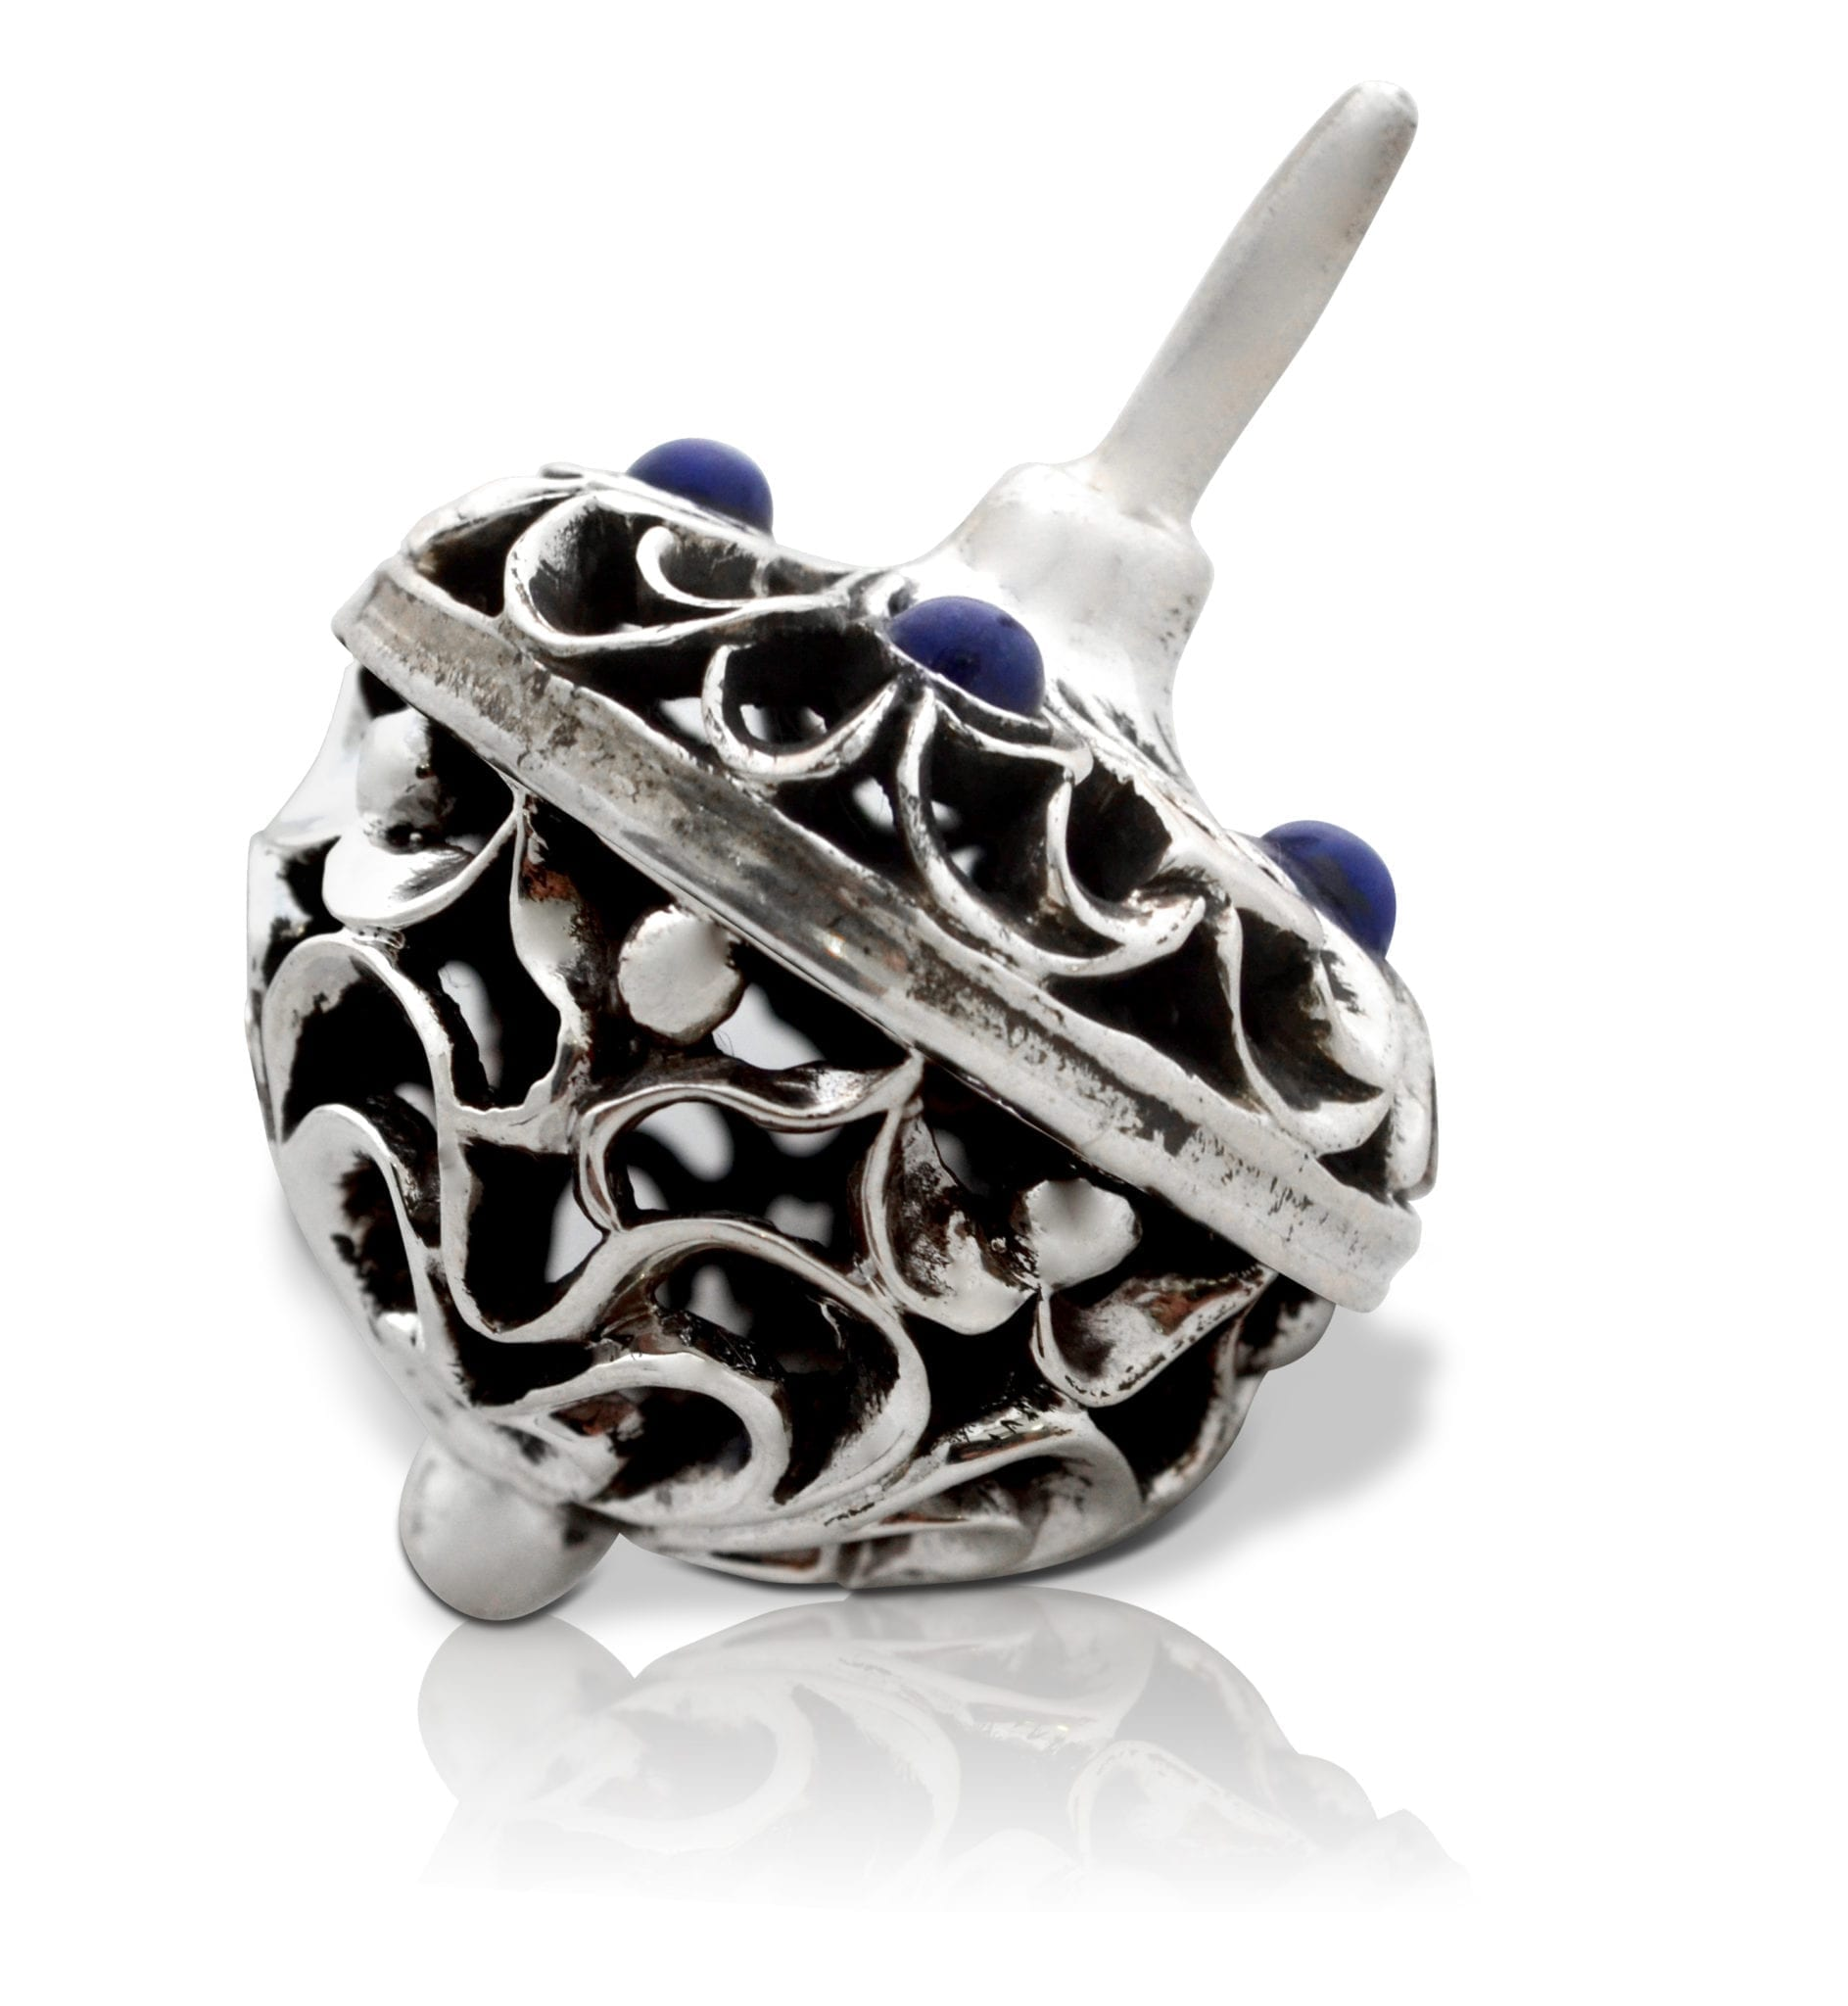 Rounded dreidel with semi-precious stones. Hannukah Judaica gifts made in Israel